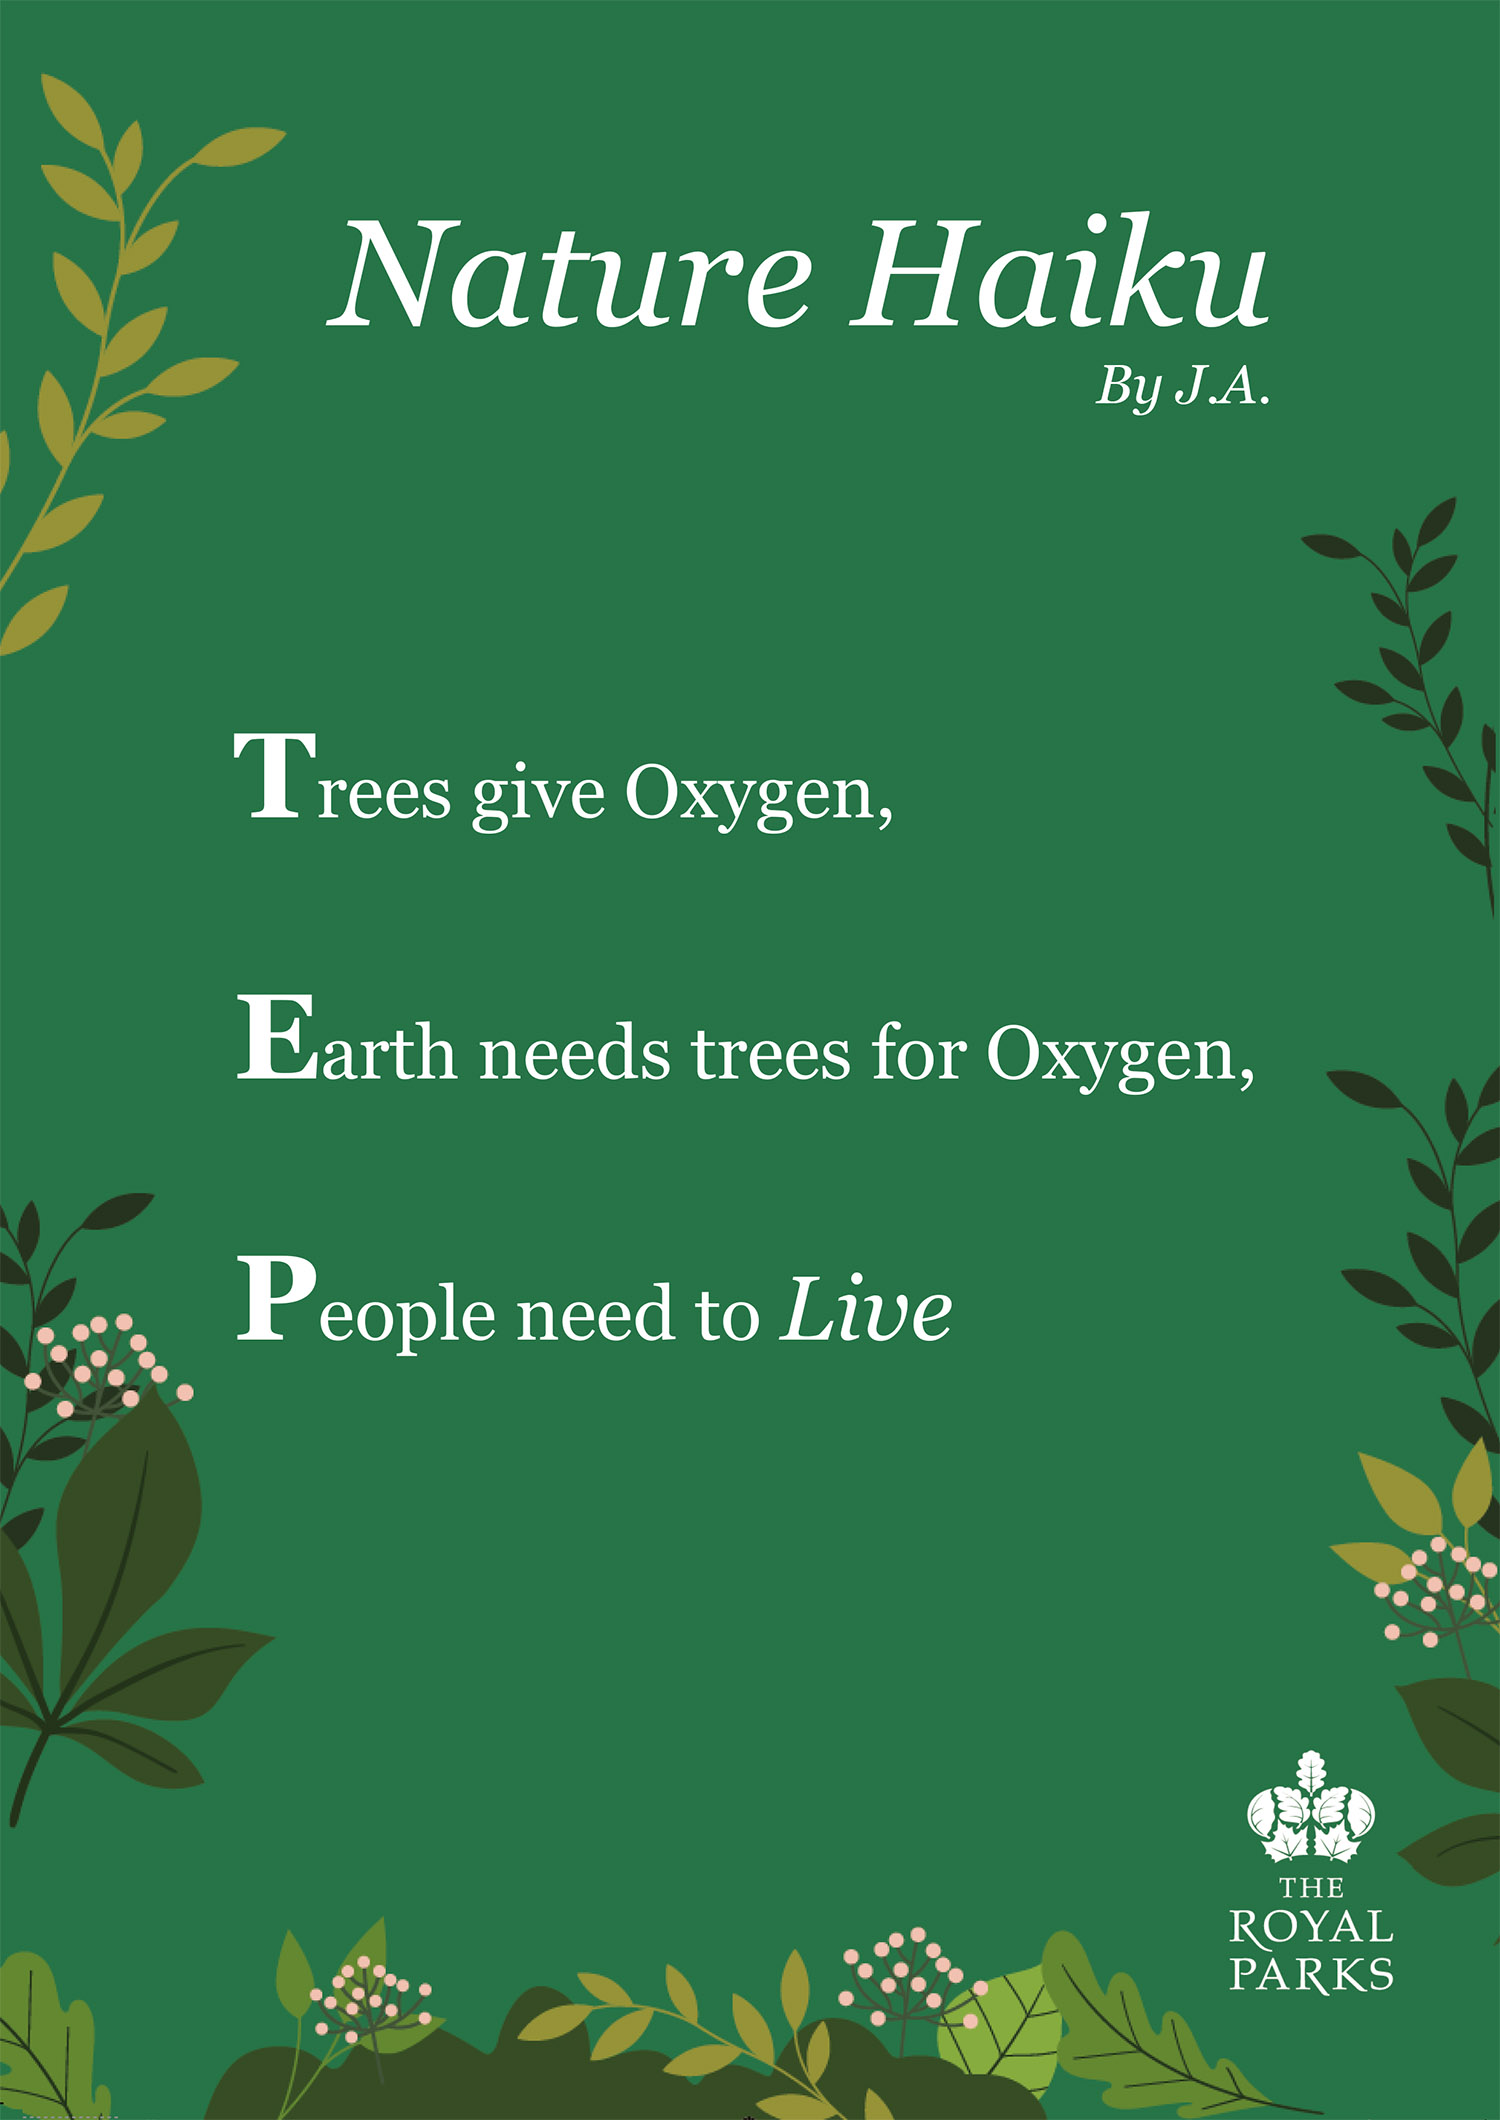 Nature Haiku by J.A. (Our Lady Immaculate Catholic Primary School)